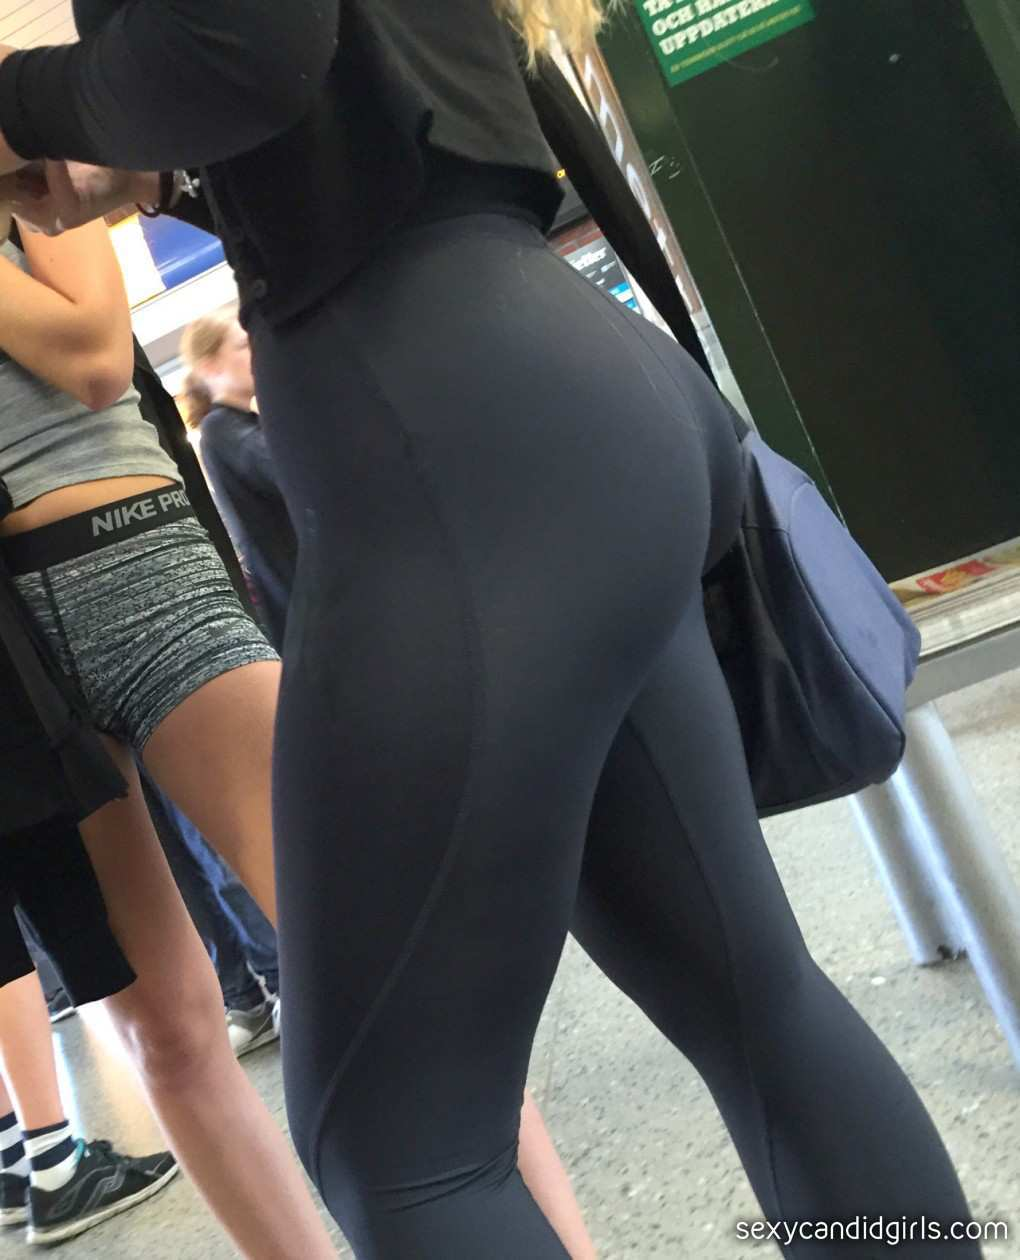 Spandex Leggings Creepshot Blonde - Sexy Candid Girls With -3453